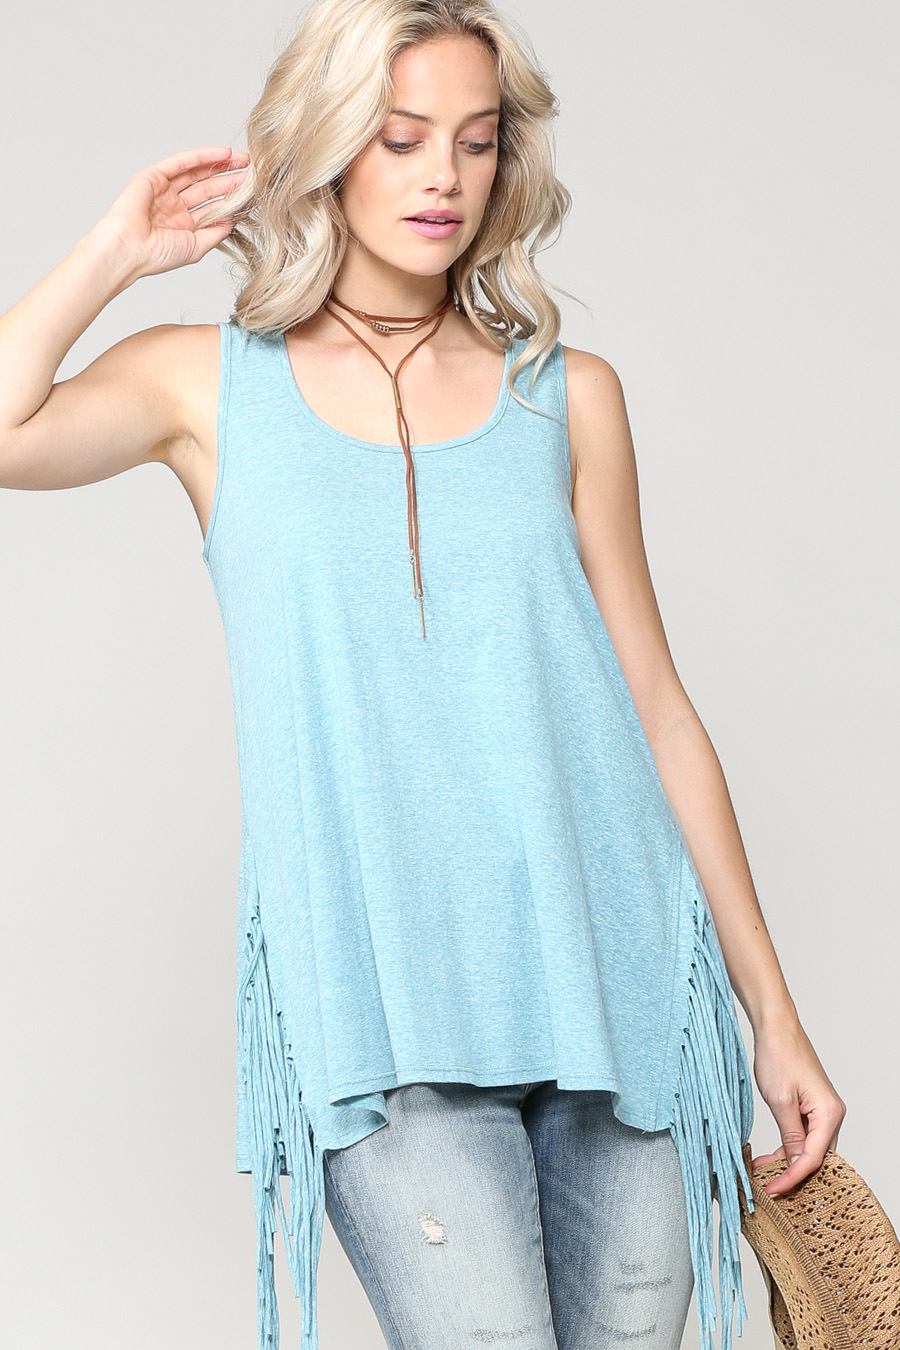 SLEEVELESS SIDE FRINGES CASUAL TOP - orangeshine.com